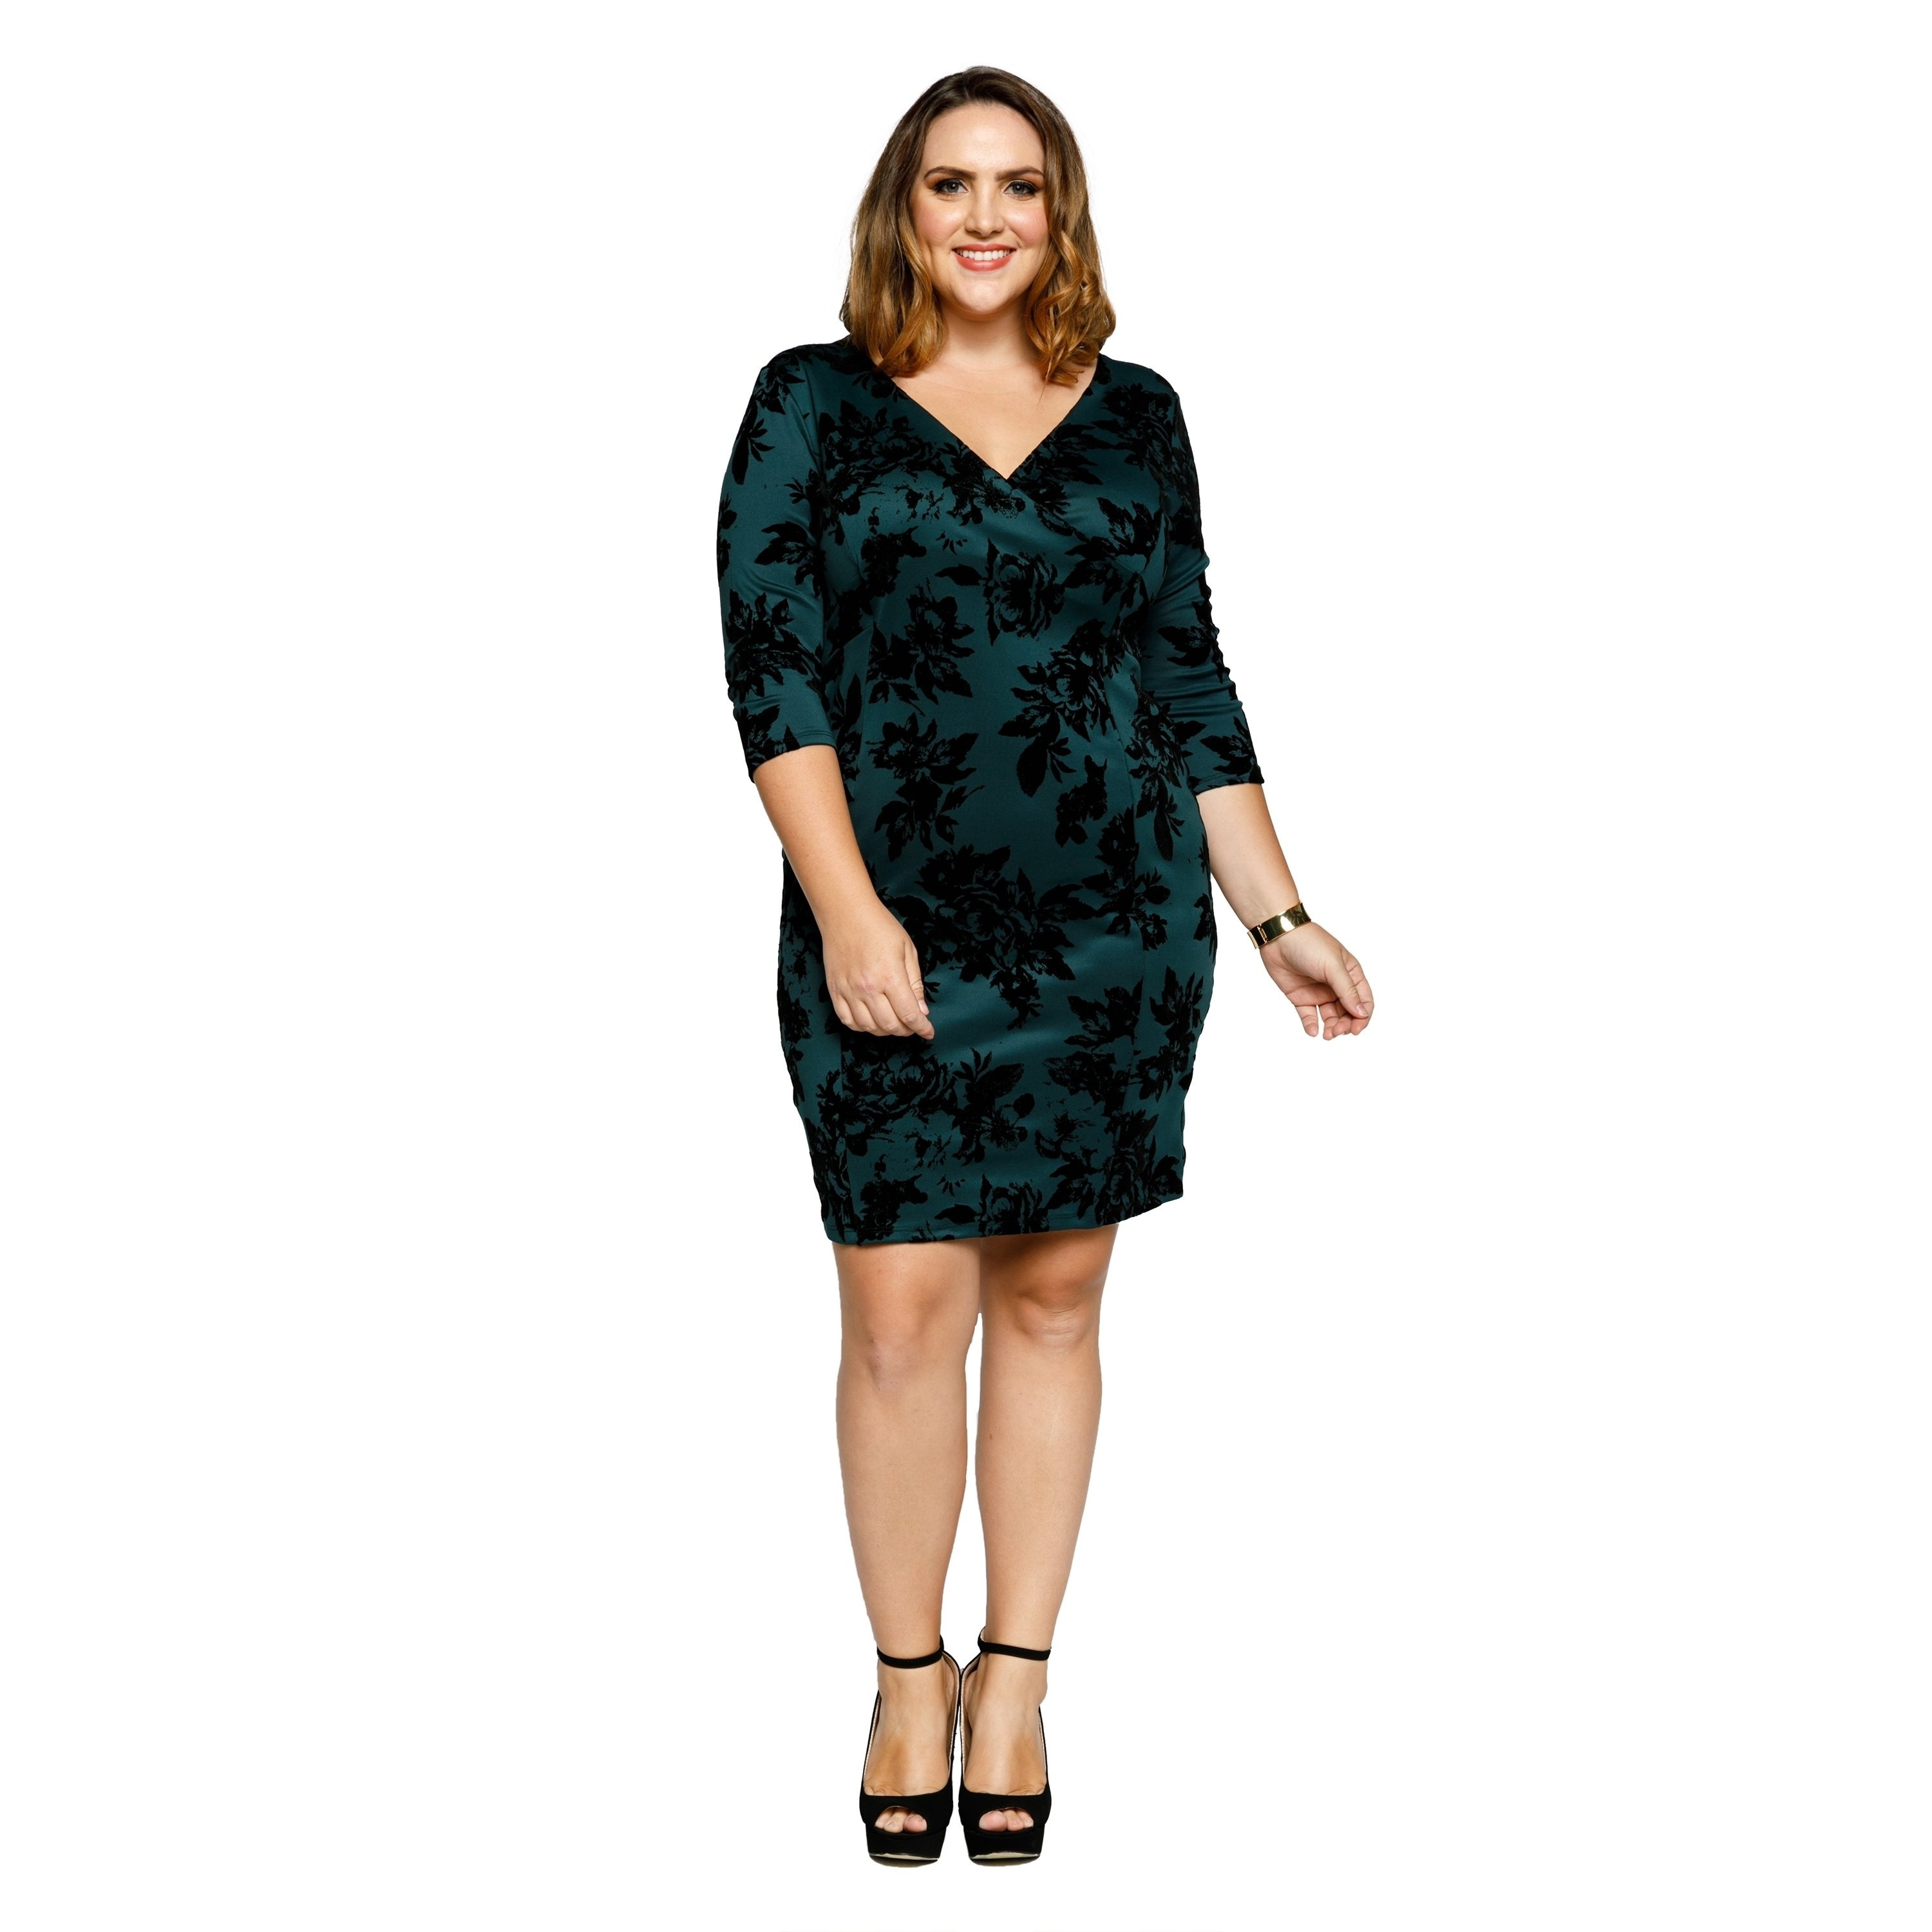 dec0a099ffa Shop Xehar Womens Plus Size Sexy Floral V-Neck 3 4 Sleeve Bodycon Dress -  On Sale - Free Shipping On Orders Over  45 - Overstock.com - 20179968